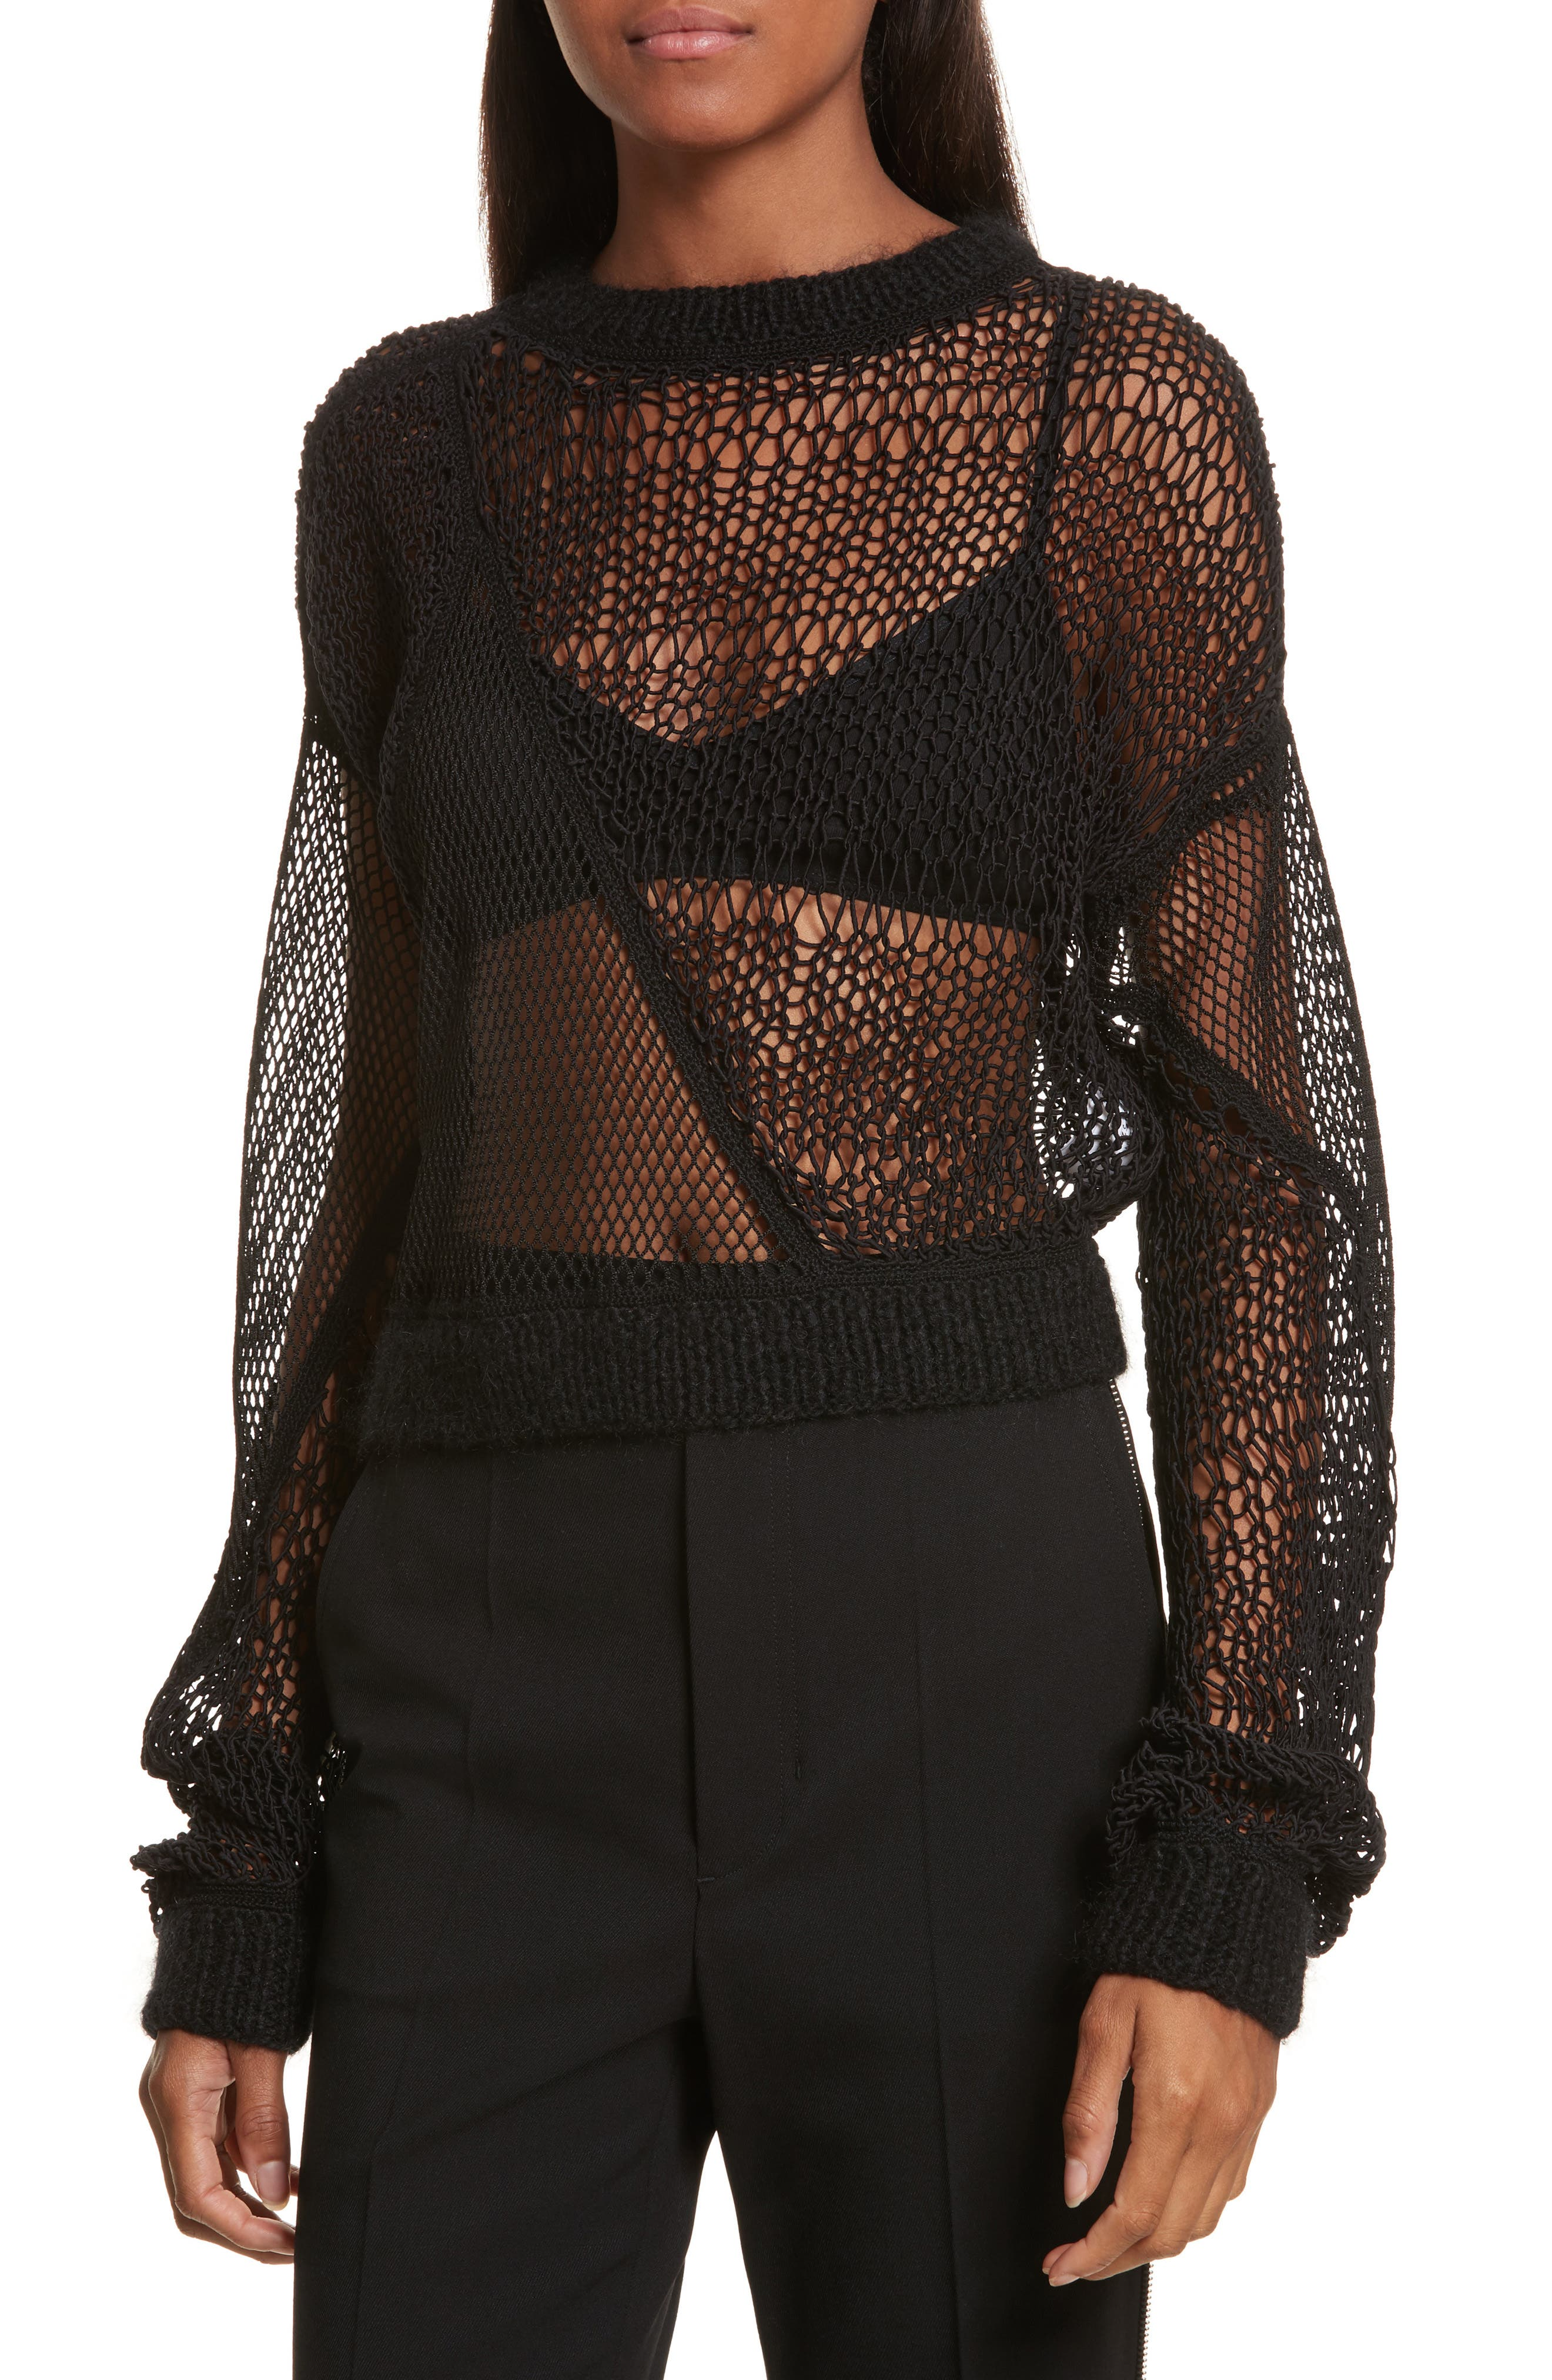 Siouxie Crew Fishnet Patchwork Sweater,                             Main thumbnail 1, color,                             001